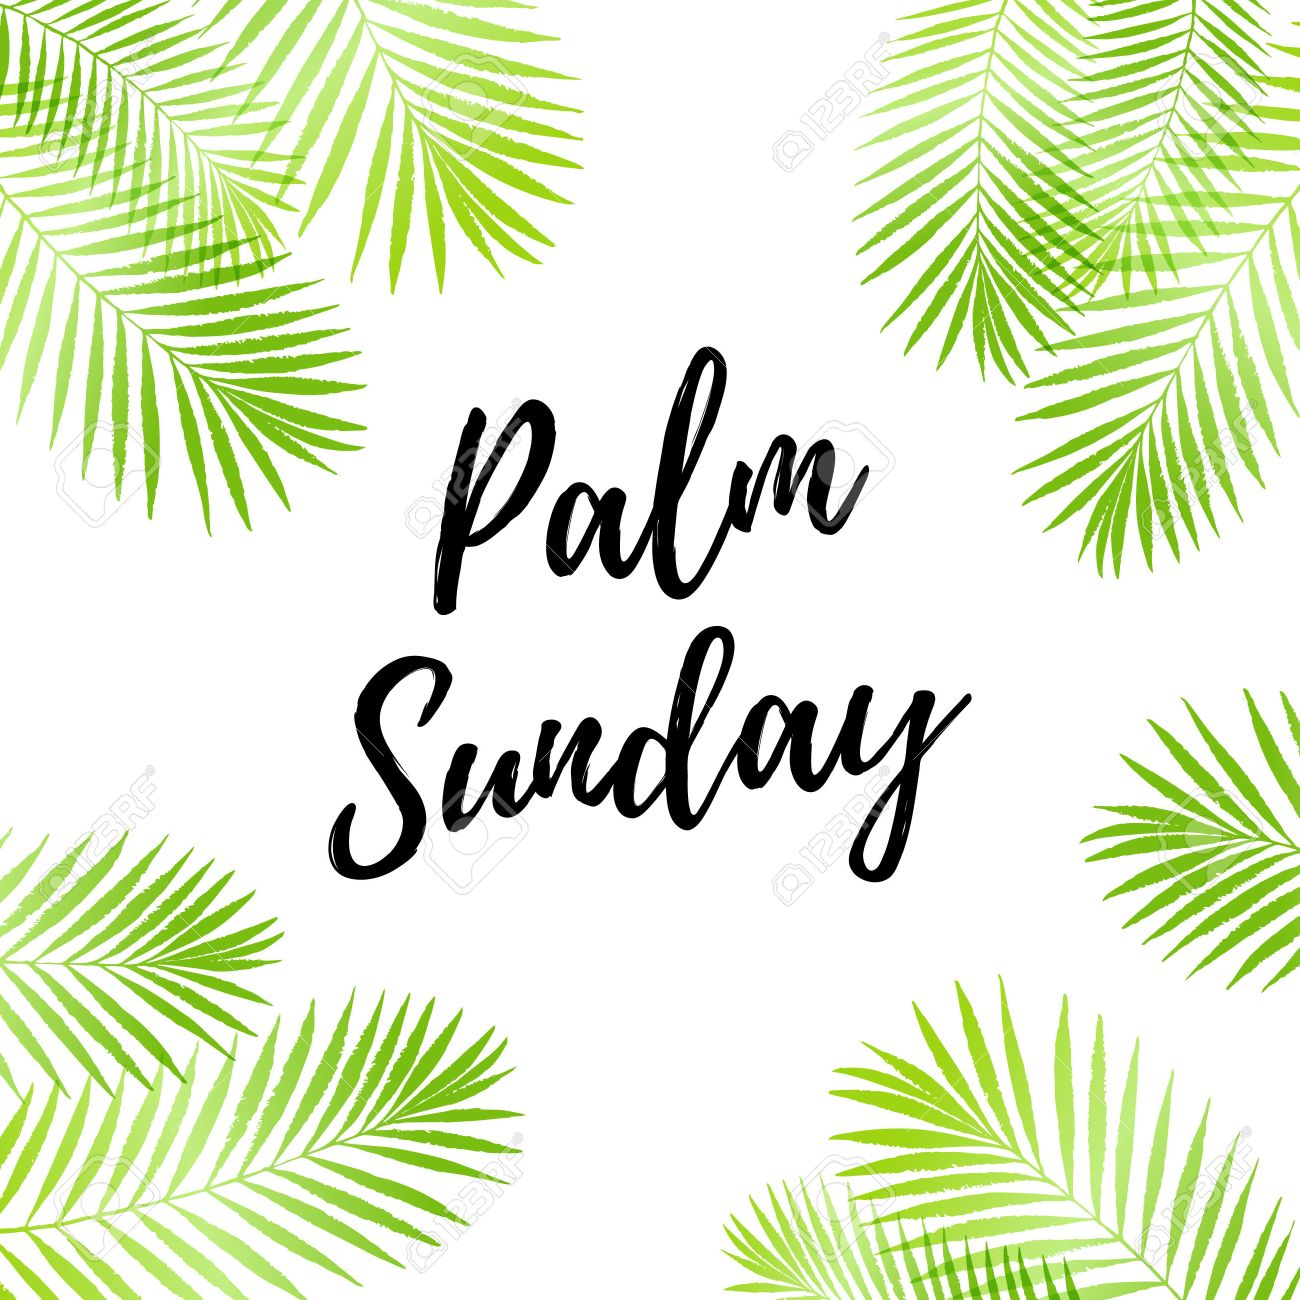 palm sunday holiday card poster with palm leaves border frame vector background stock